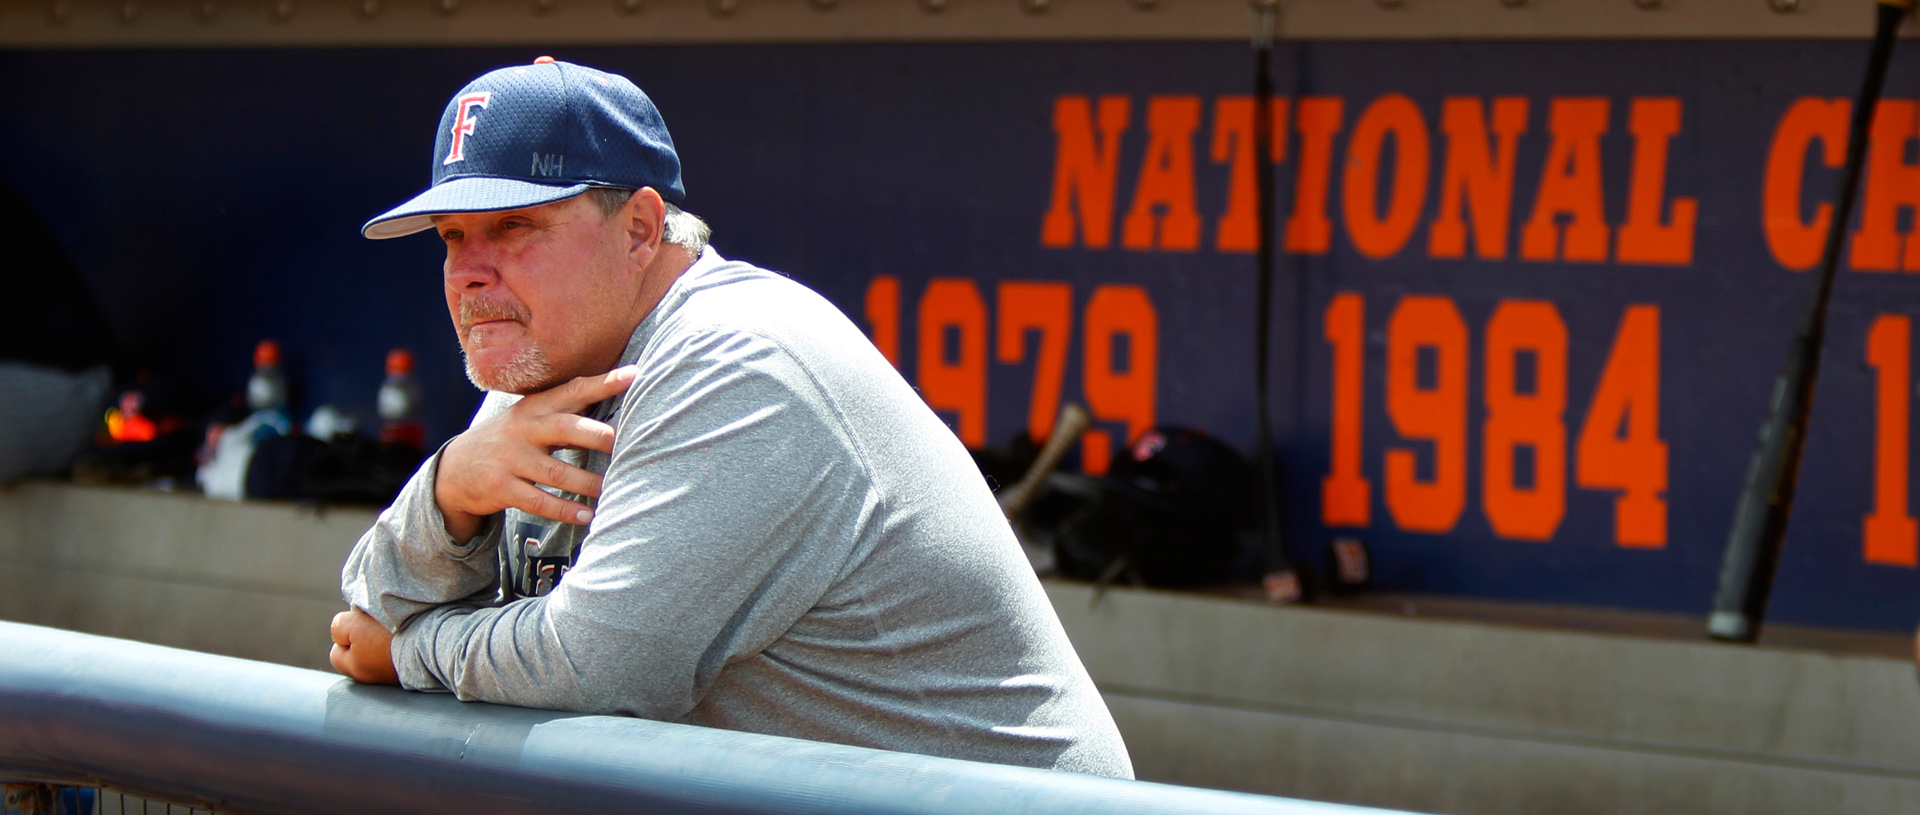 Cal State Fullerton baseball coach Rick Vanderhook watches the team run through drills at Cal State Fullerton's Goodwin Field.